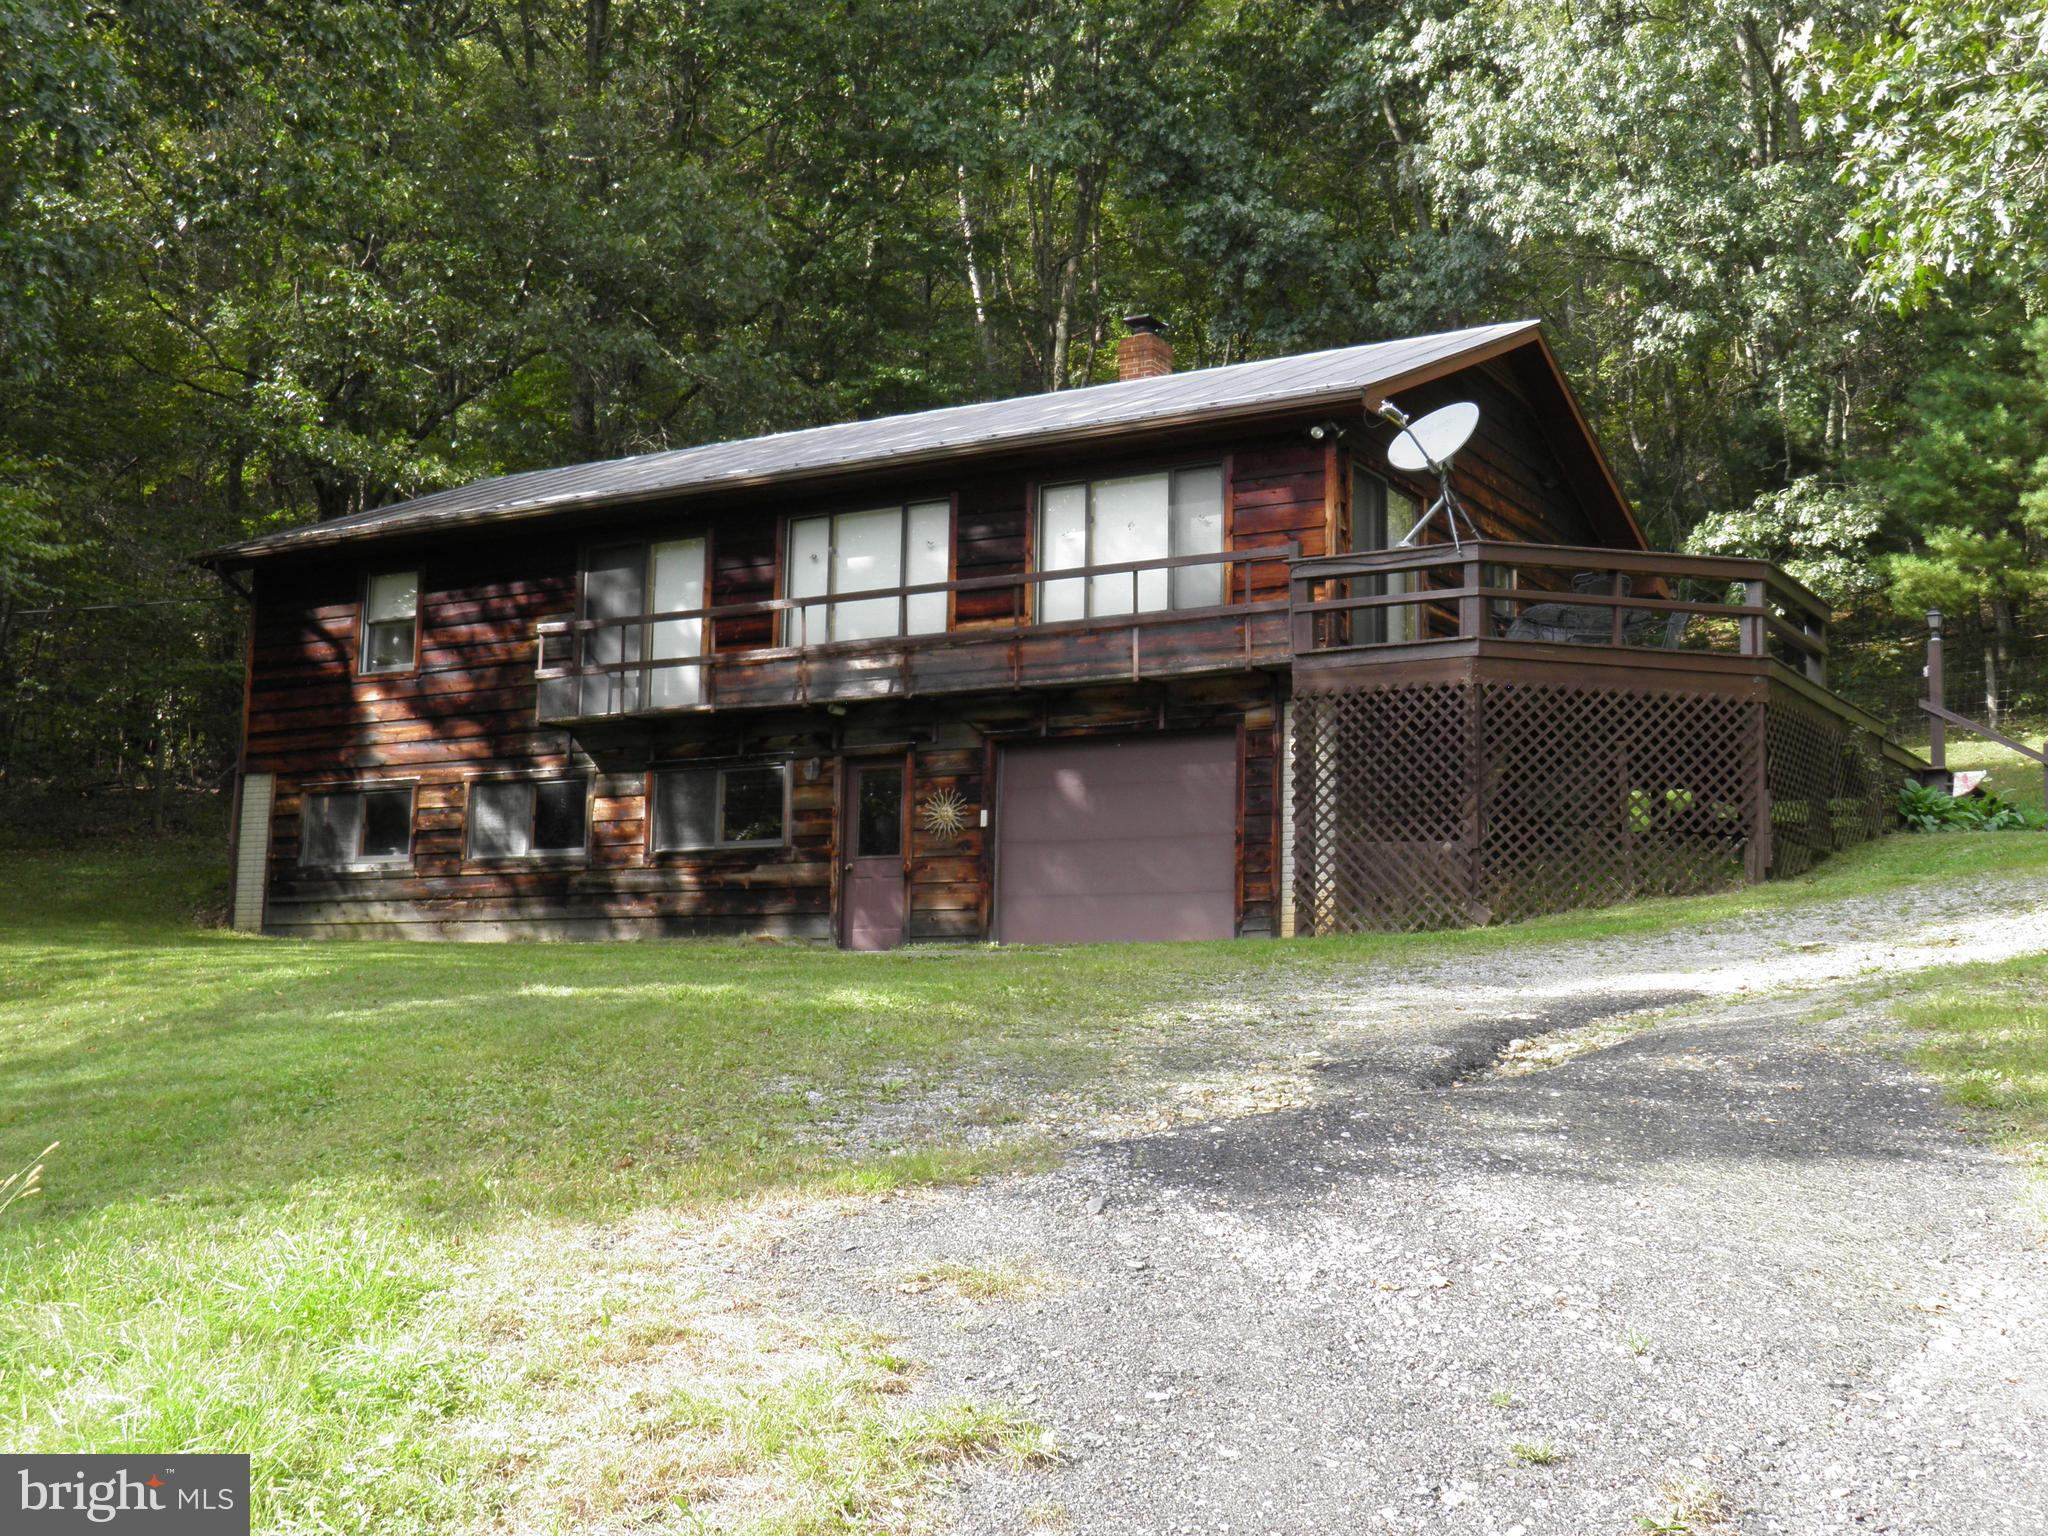 191 CALHOUN LANE, SUGAR GROVE, WV 26815